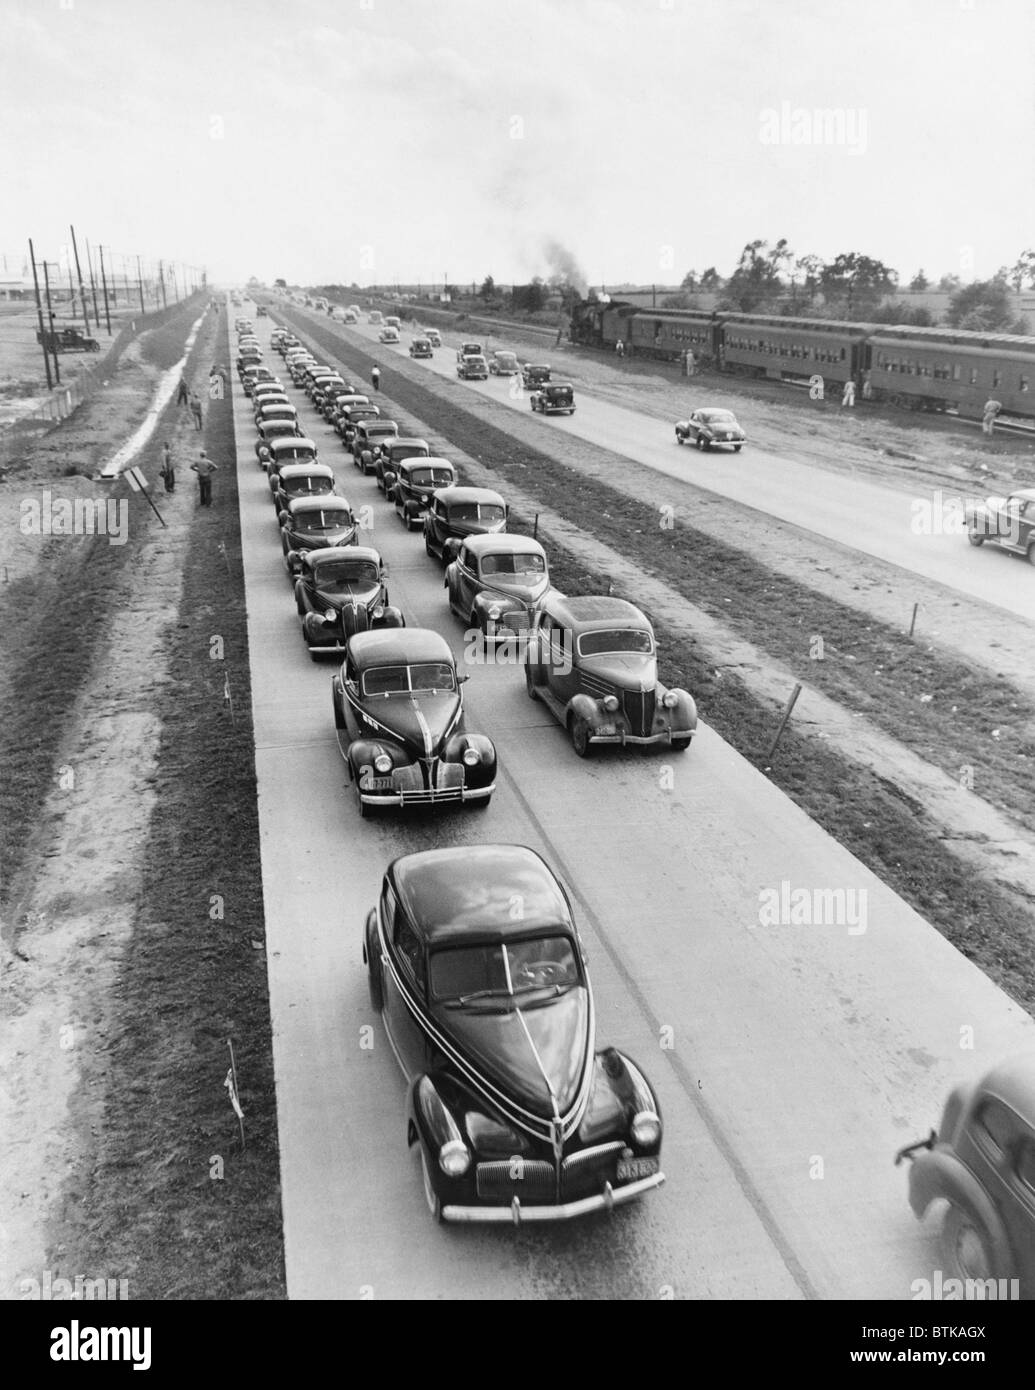 U.S. Highway 62 was expanded into a four lane highway in the 1940s. Post World War II highway construction committed - Stock Image